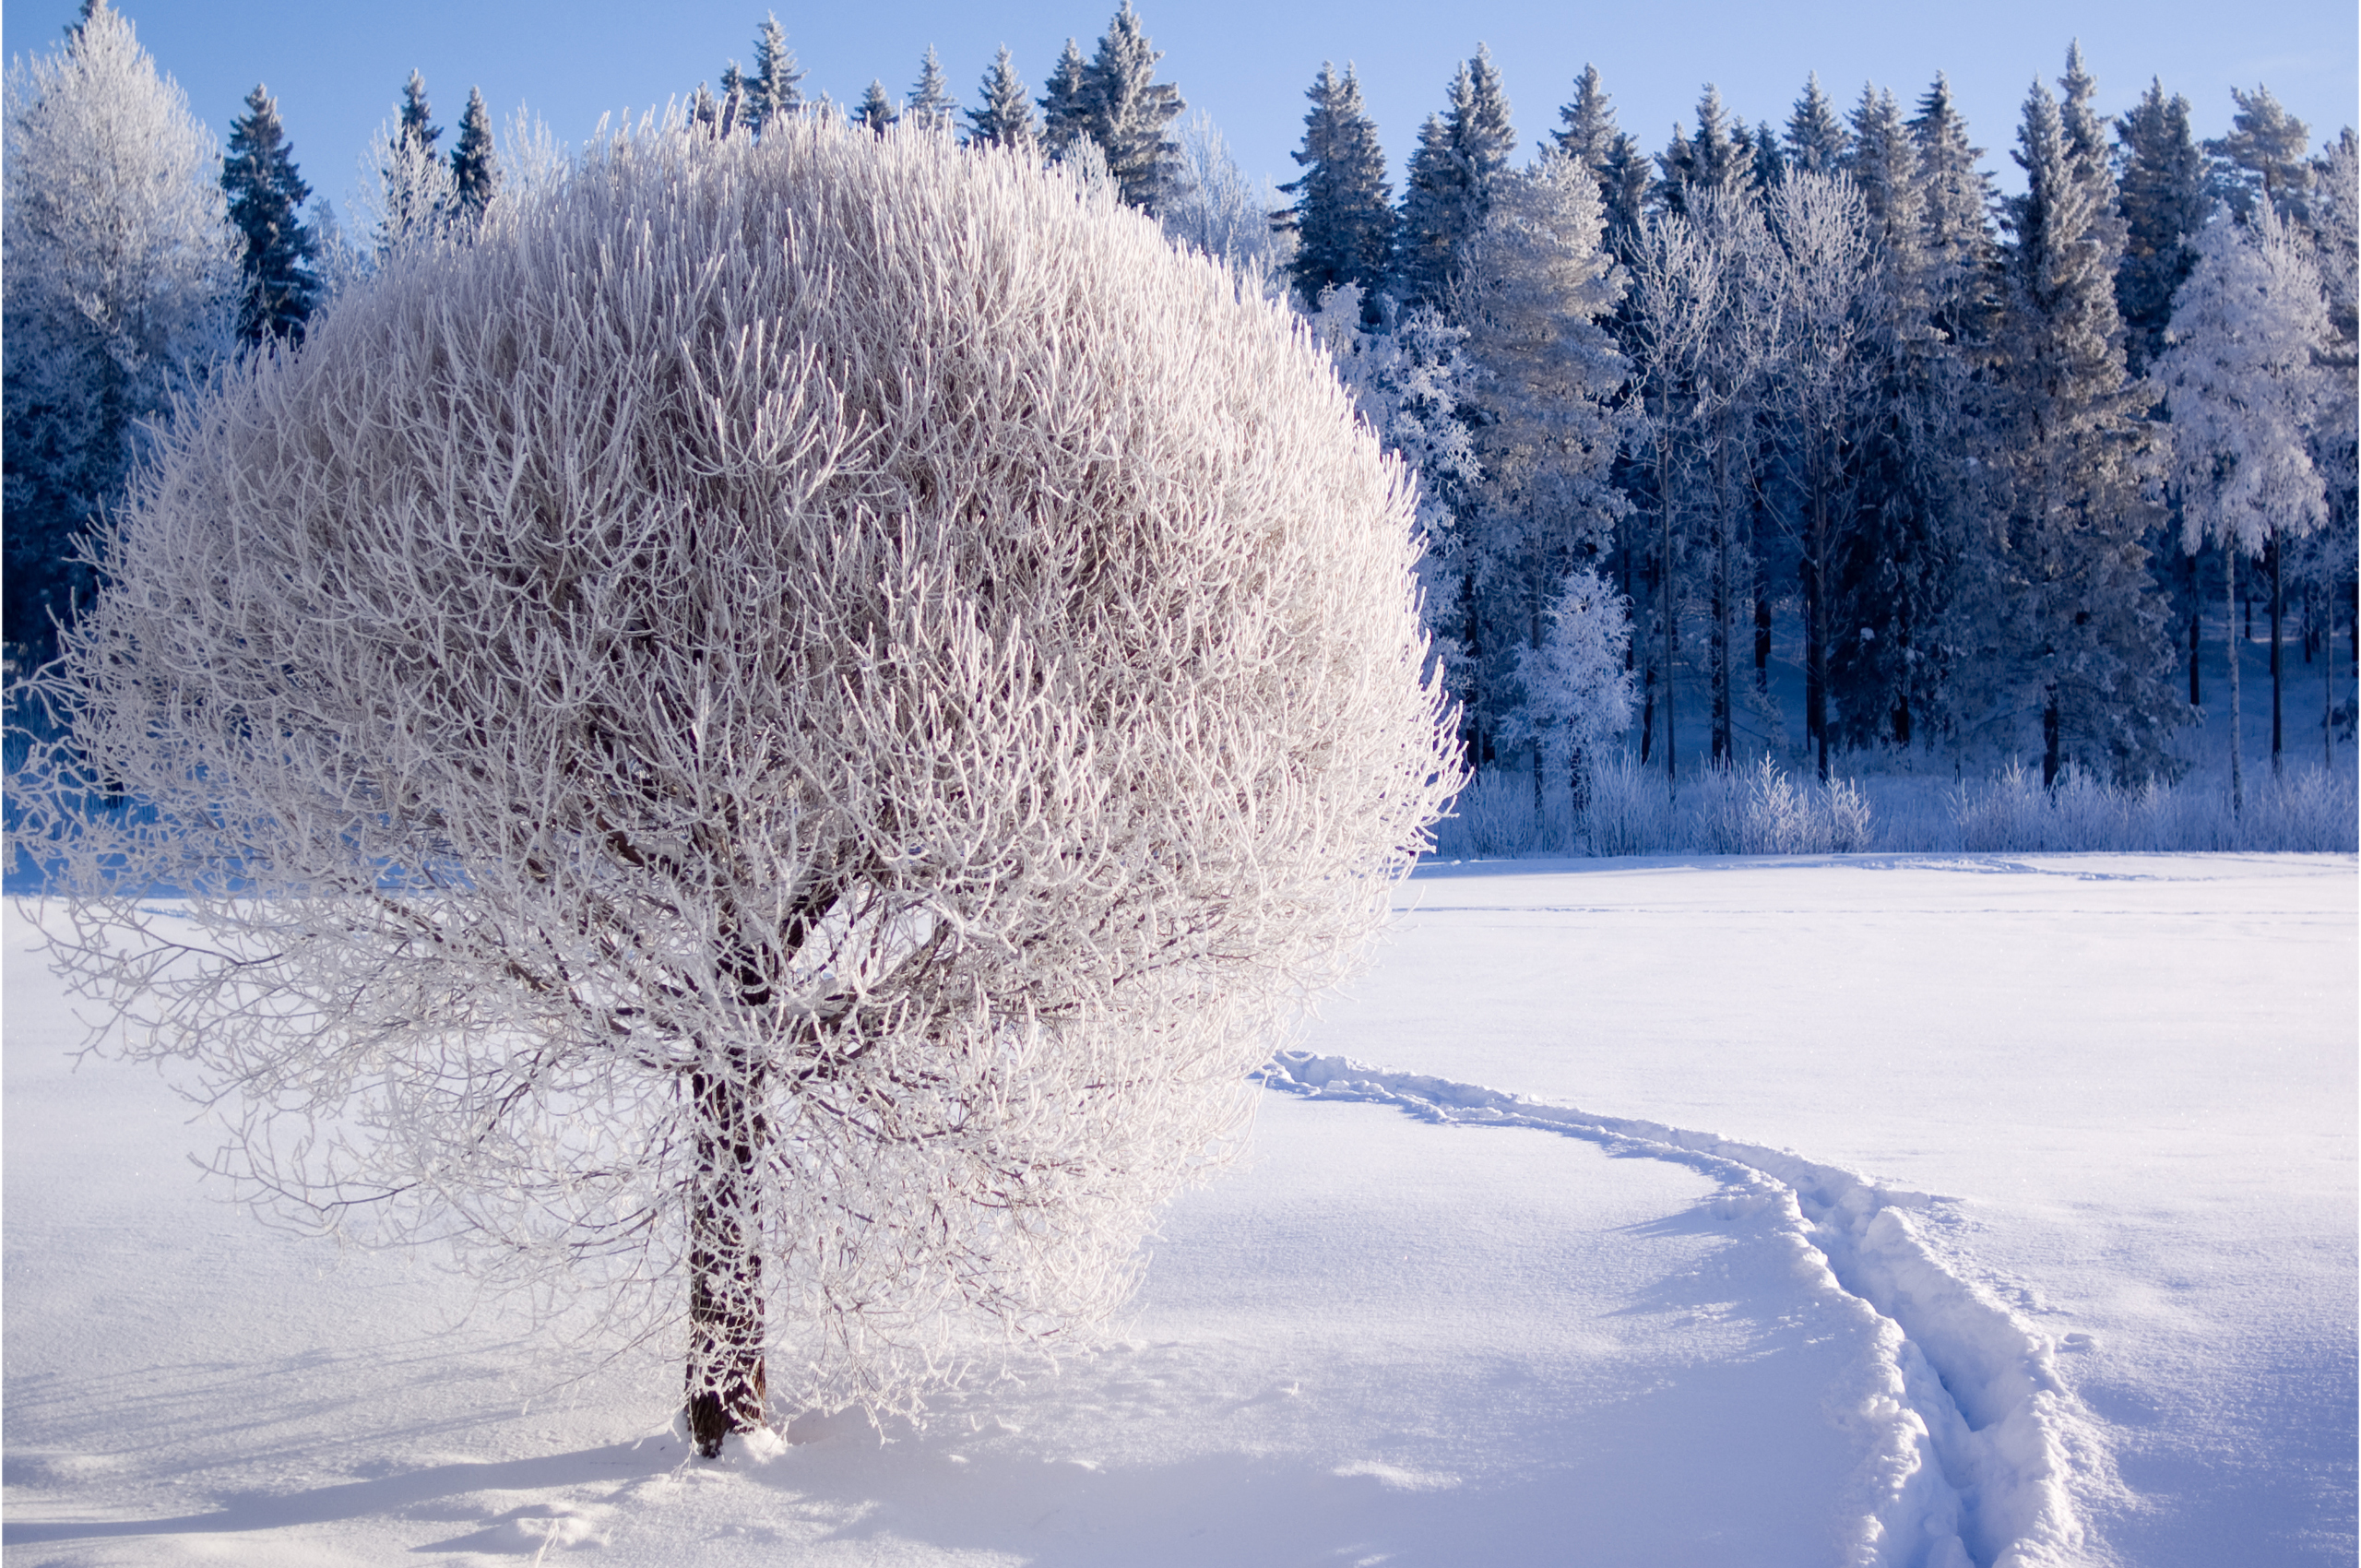 Winter Trees Desktop Backgrounds wallpaper wallpaper hd 2560x1700